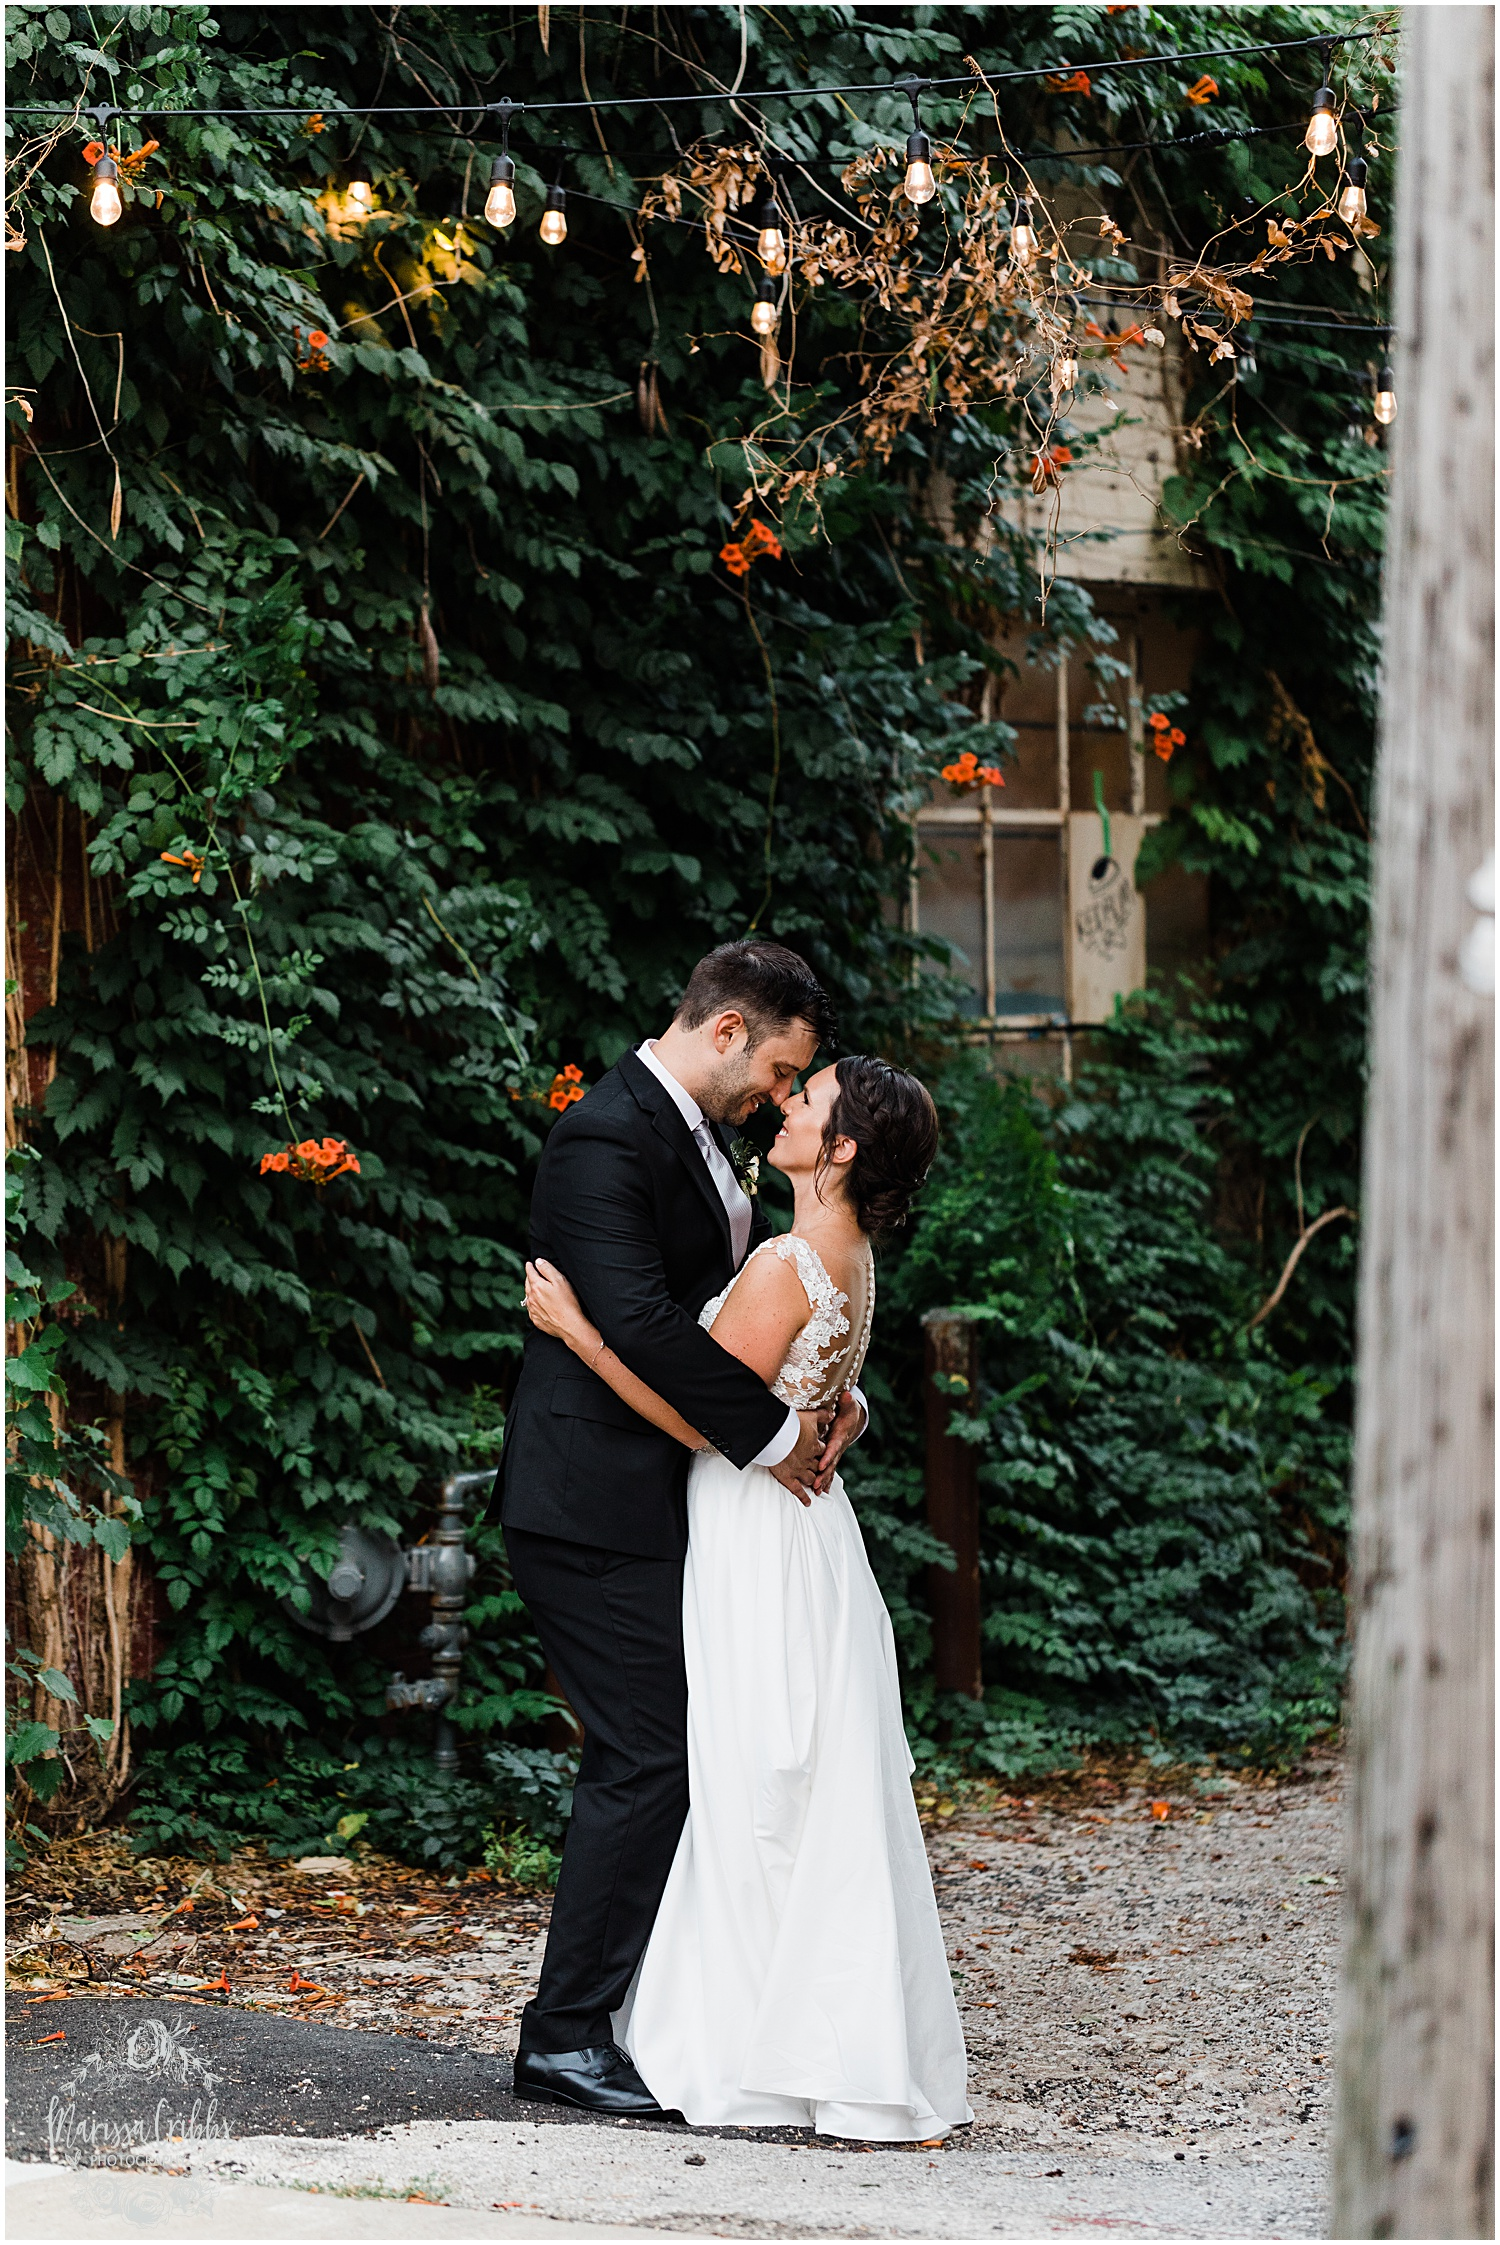 KELLY & MITCH MARRIED BLOG | MARISSA CRIBBS PHOTOGRAPHY | THE EVERLY EVENT SPACE_8919.jpg